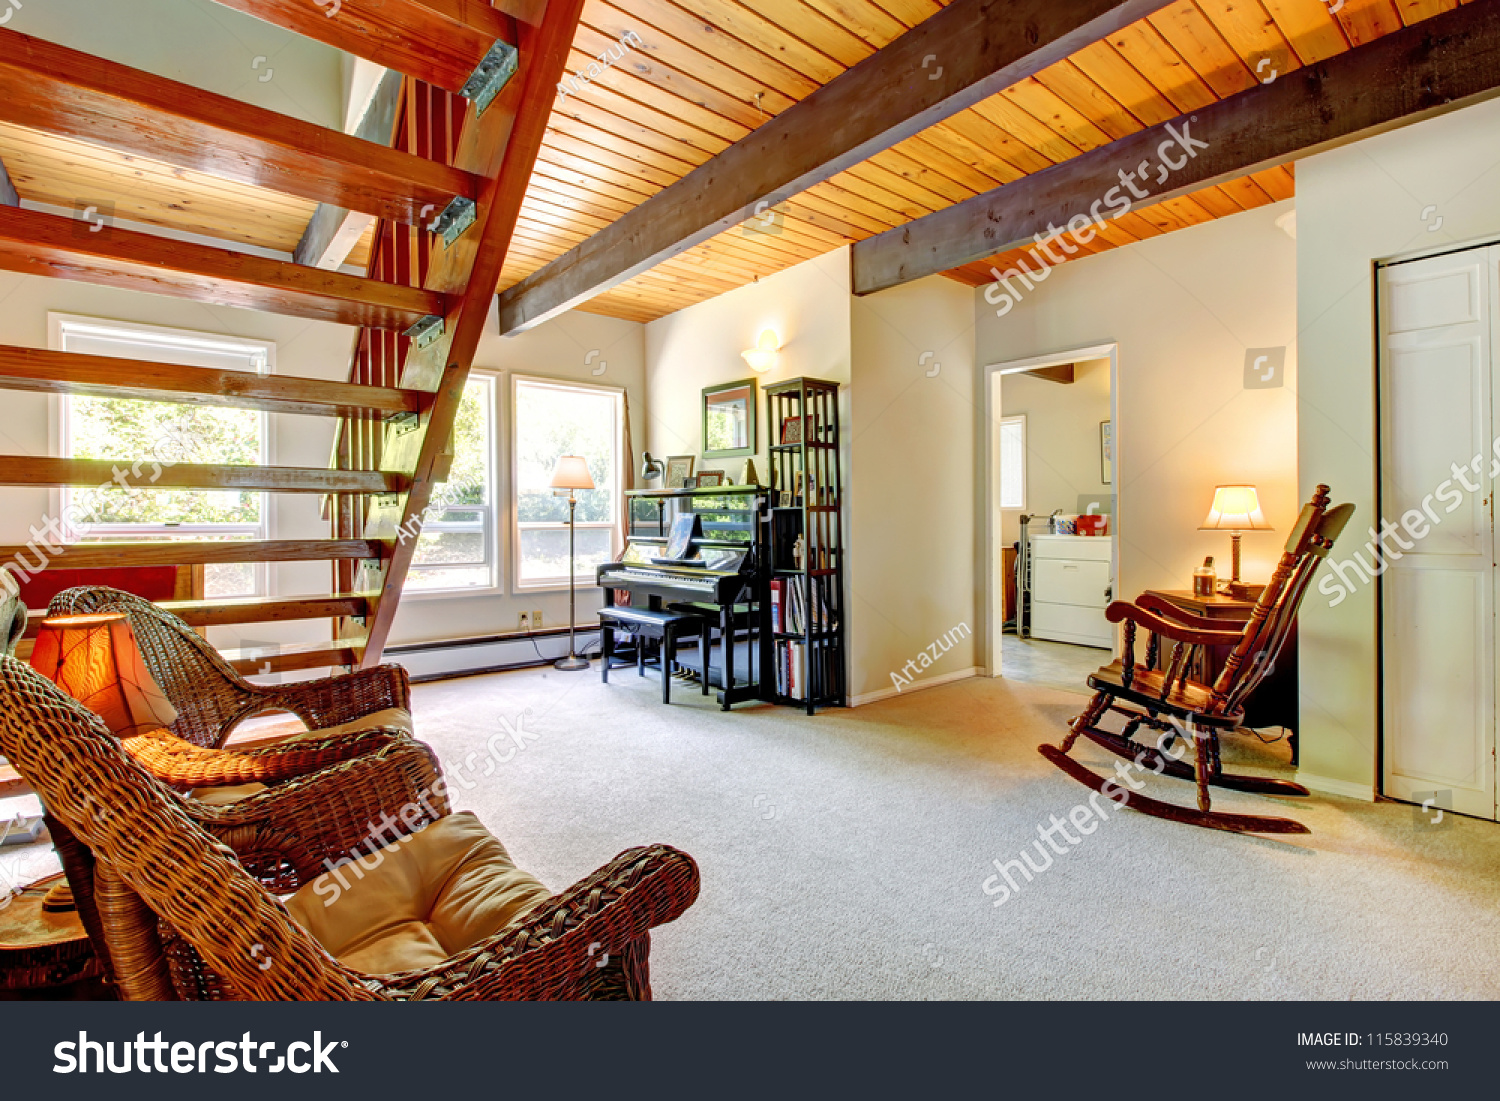 Bright bedroom red bed open balcony stock photo 115839340 for Open balcony